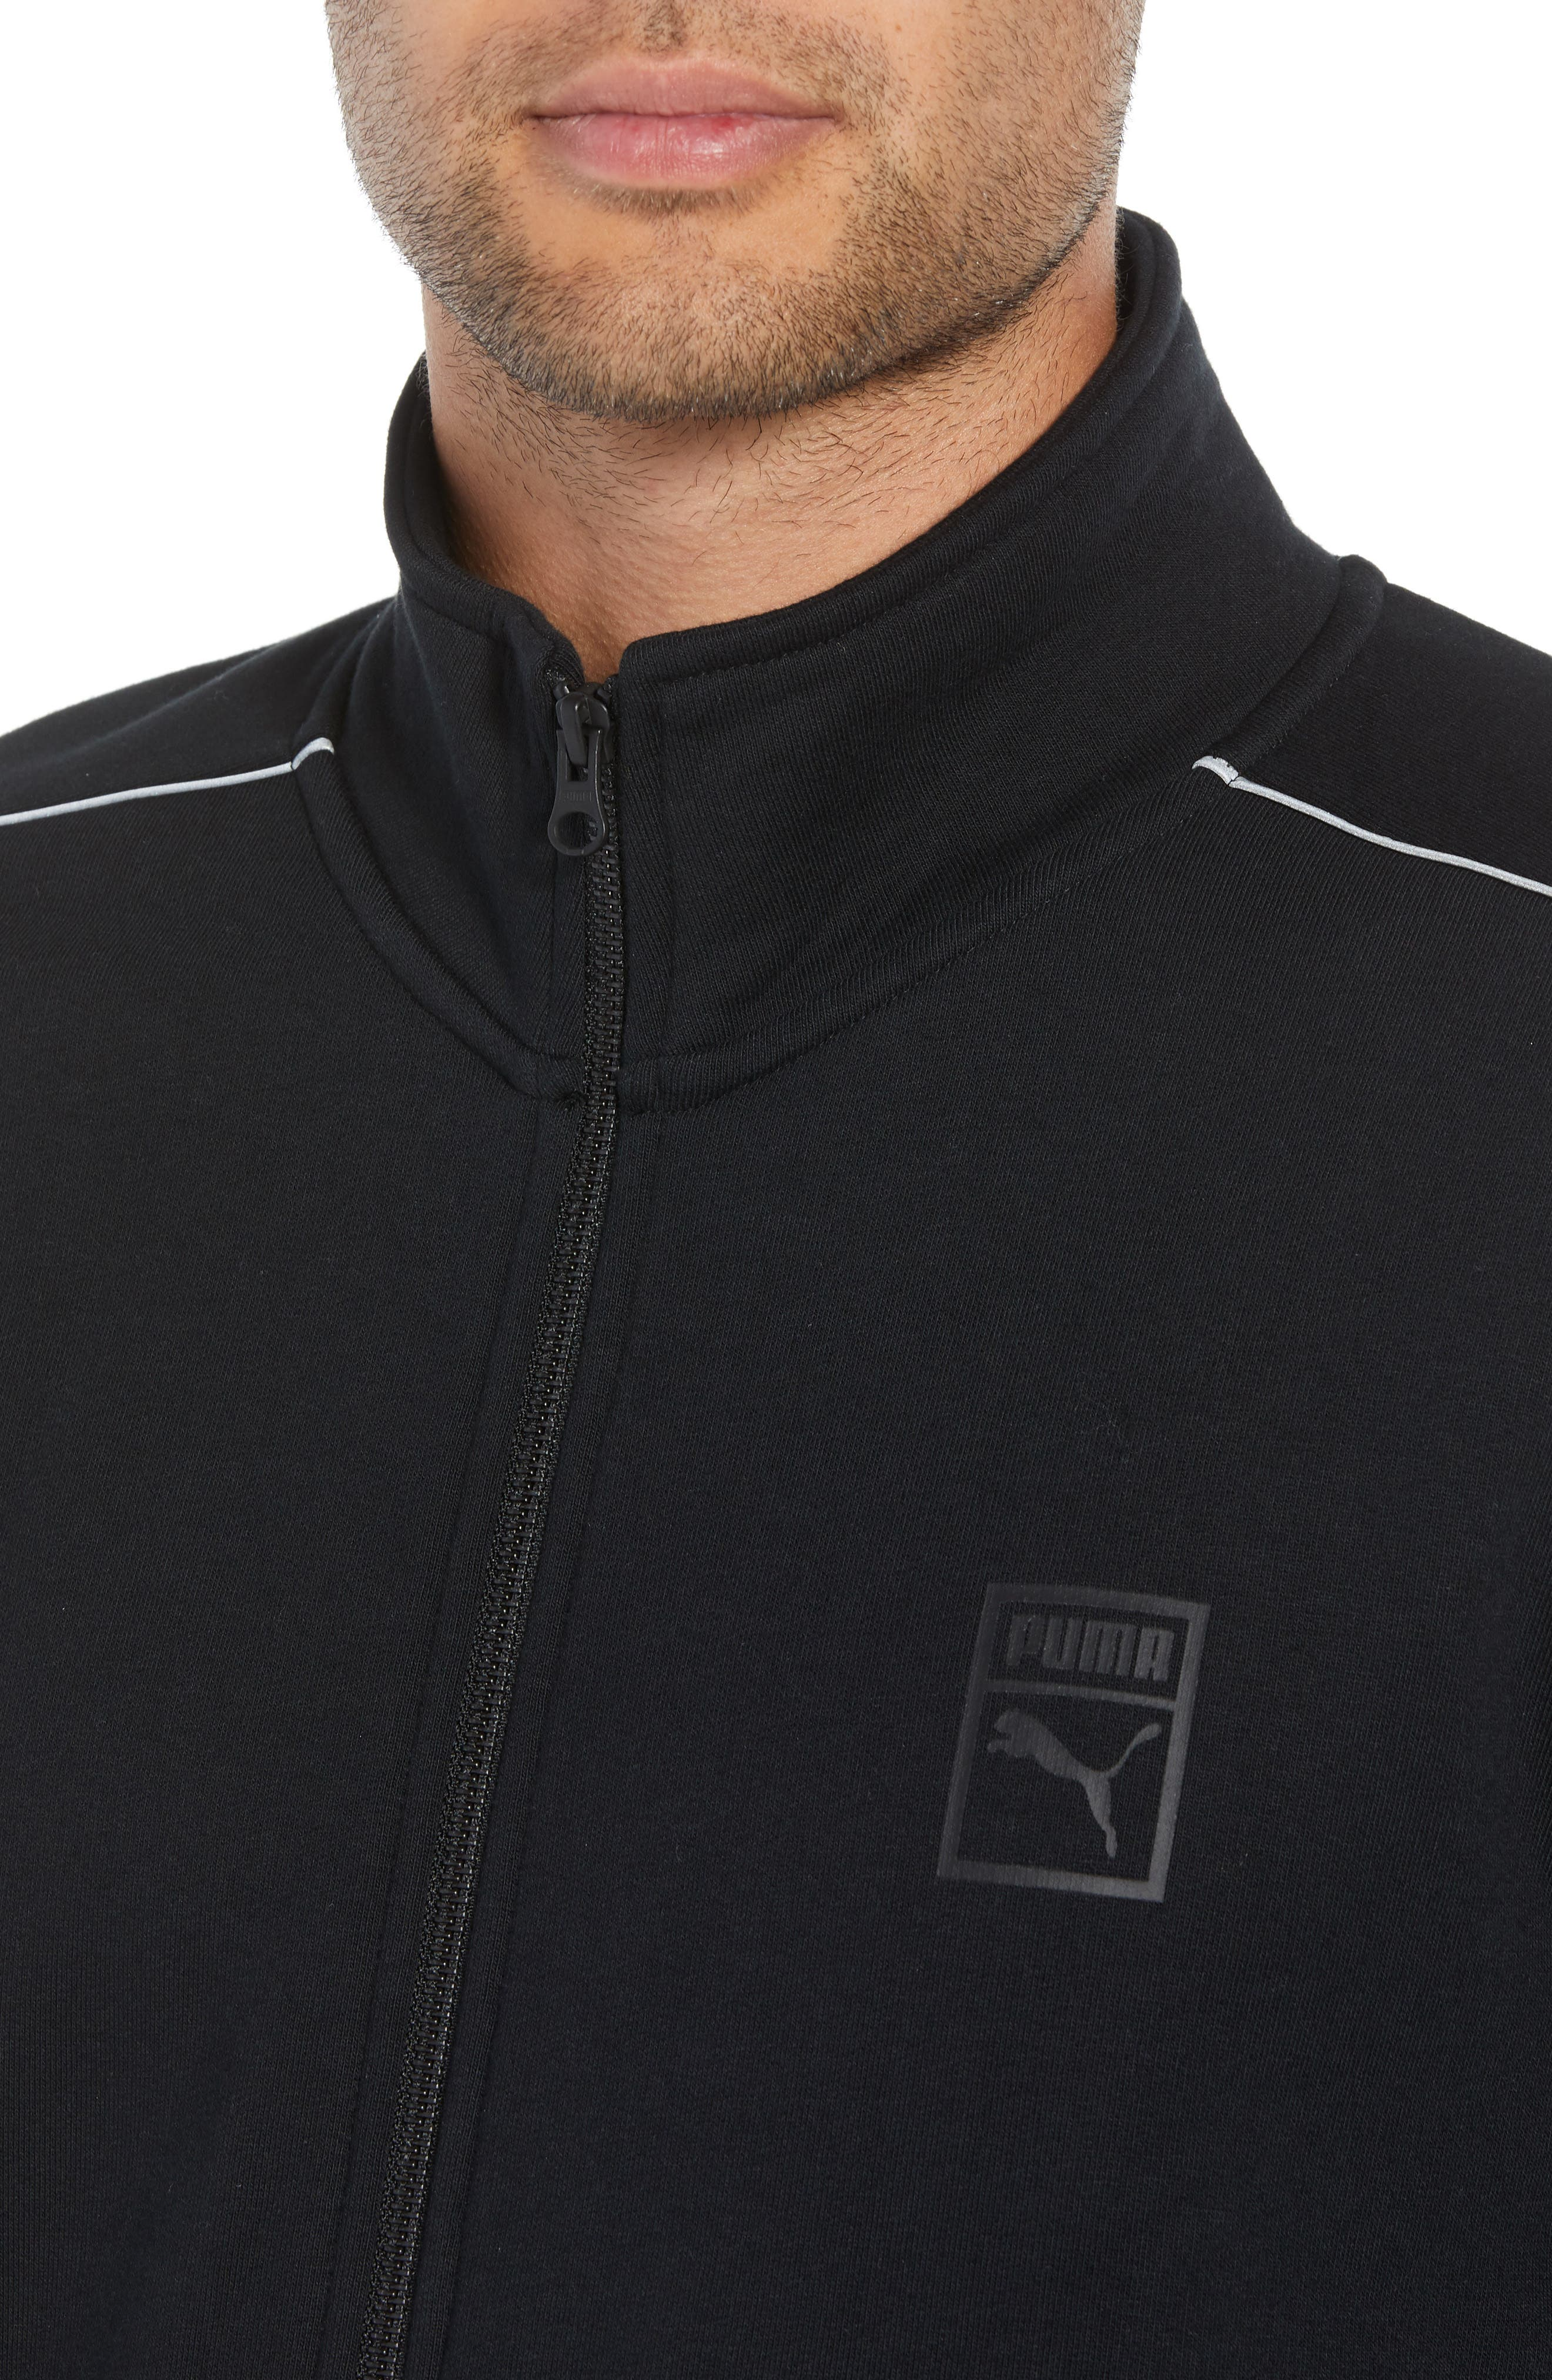 Chains T7 Track Jacket,                             Alternate thumbnail 4, color,                             PUMA BLACK/ GOLD